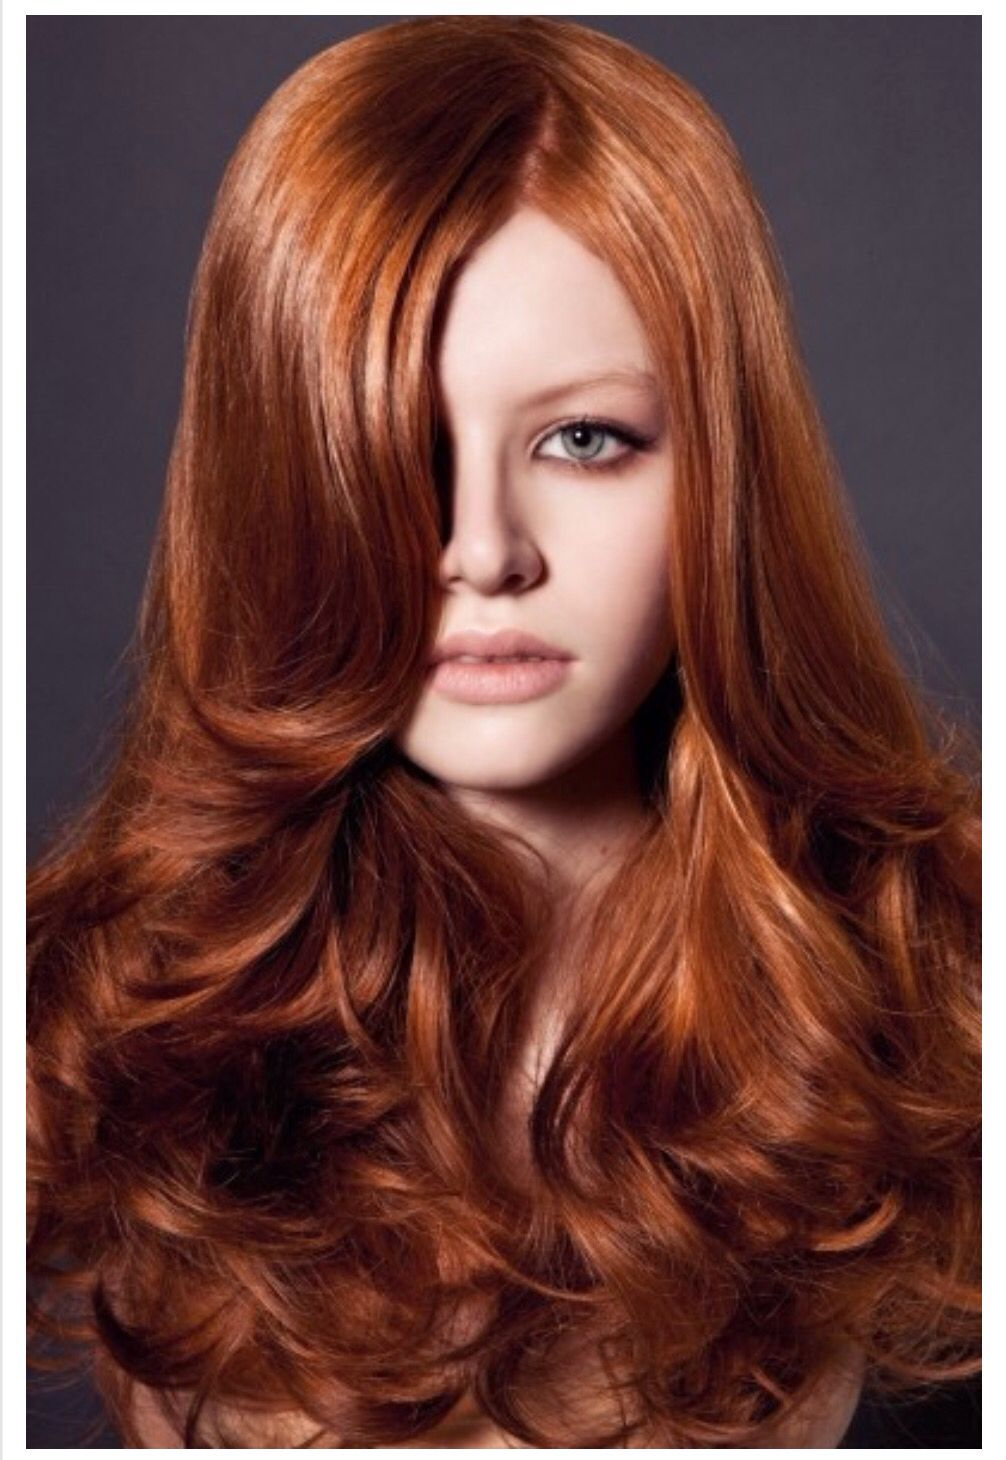 Redhead hair color options